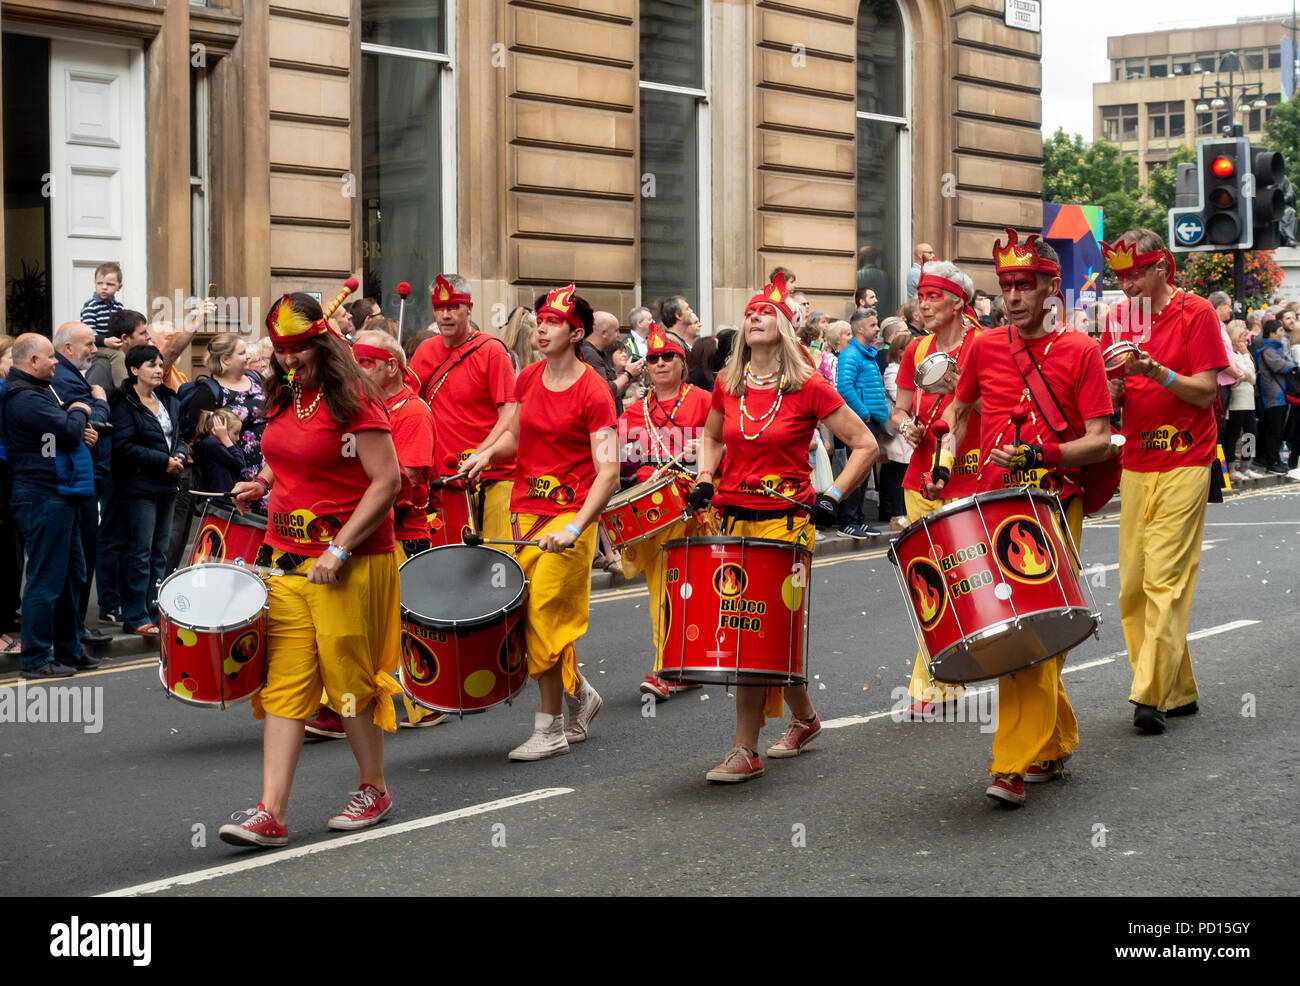 Samba band Bloco Fogo from Kent participating in the Carnival Procession of Glasgow's Merchant City Festival,.2018 - Stock Image